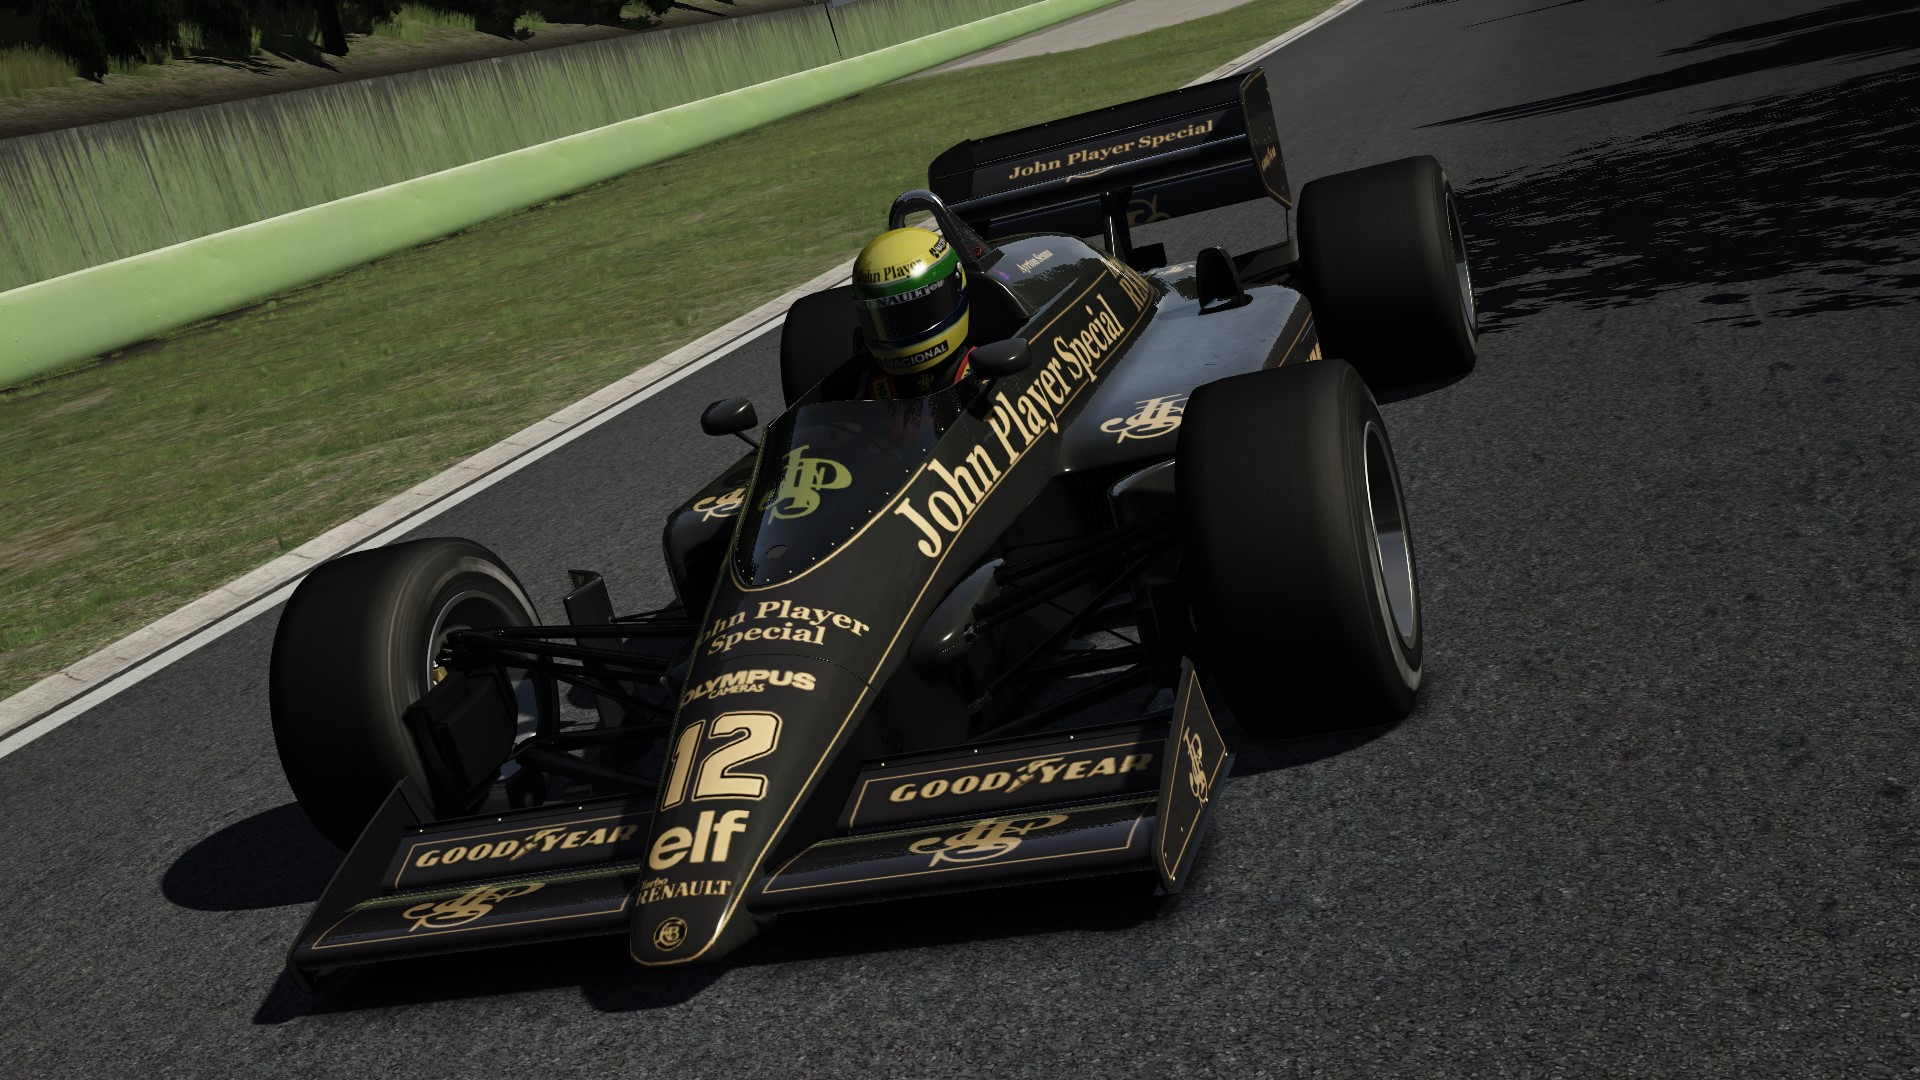 Screenshot_lotus_98t_imola_27-7-2014-17-23-15.jpg